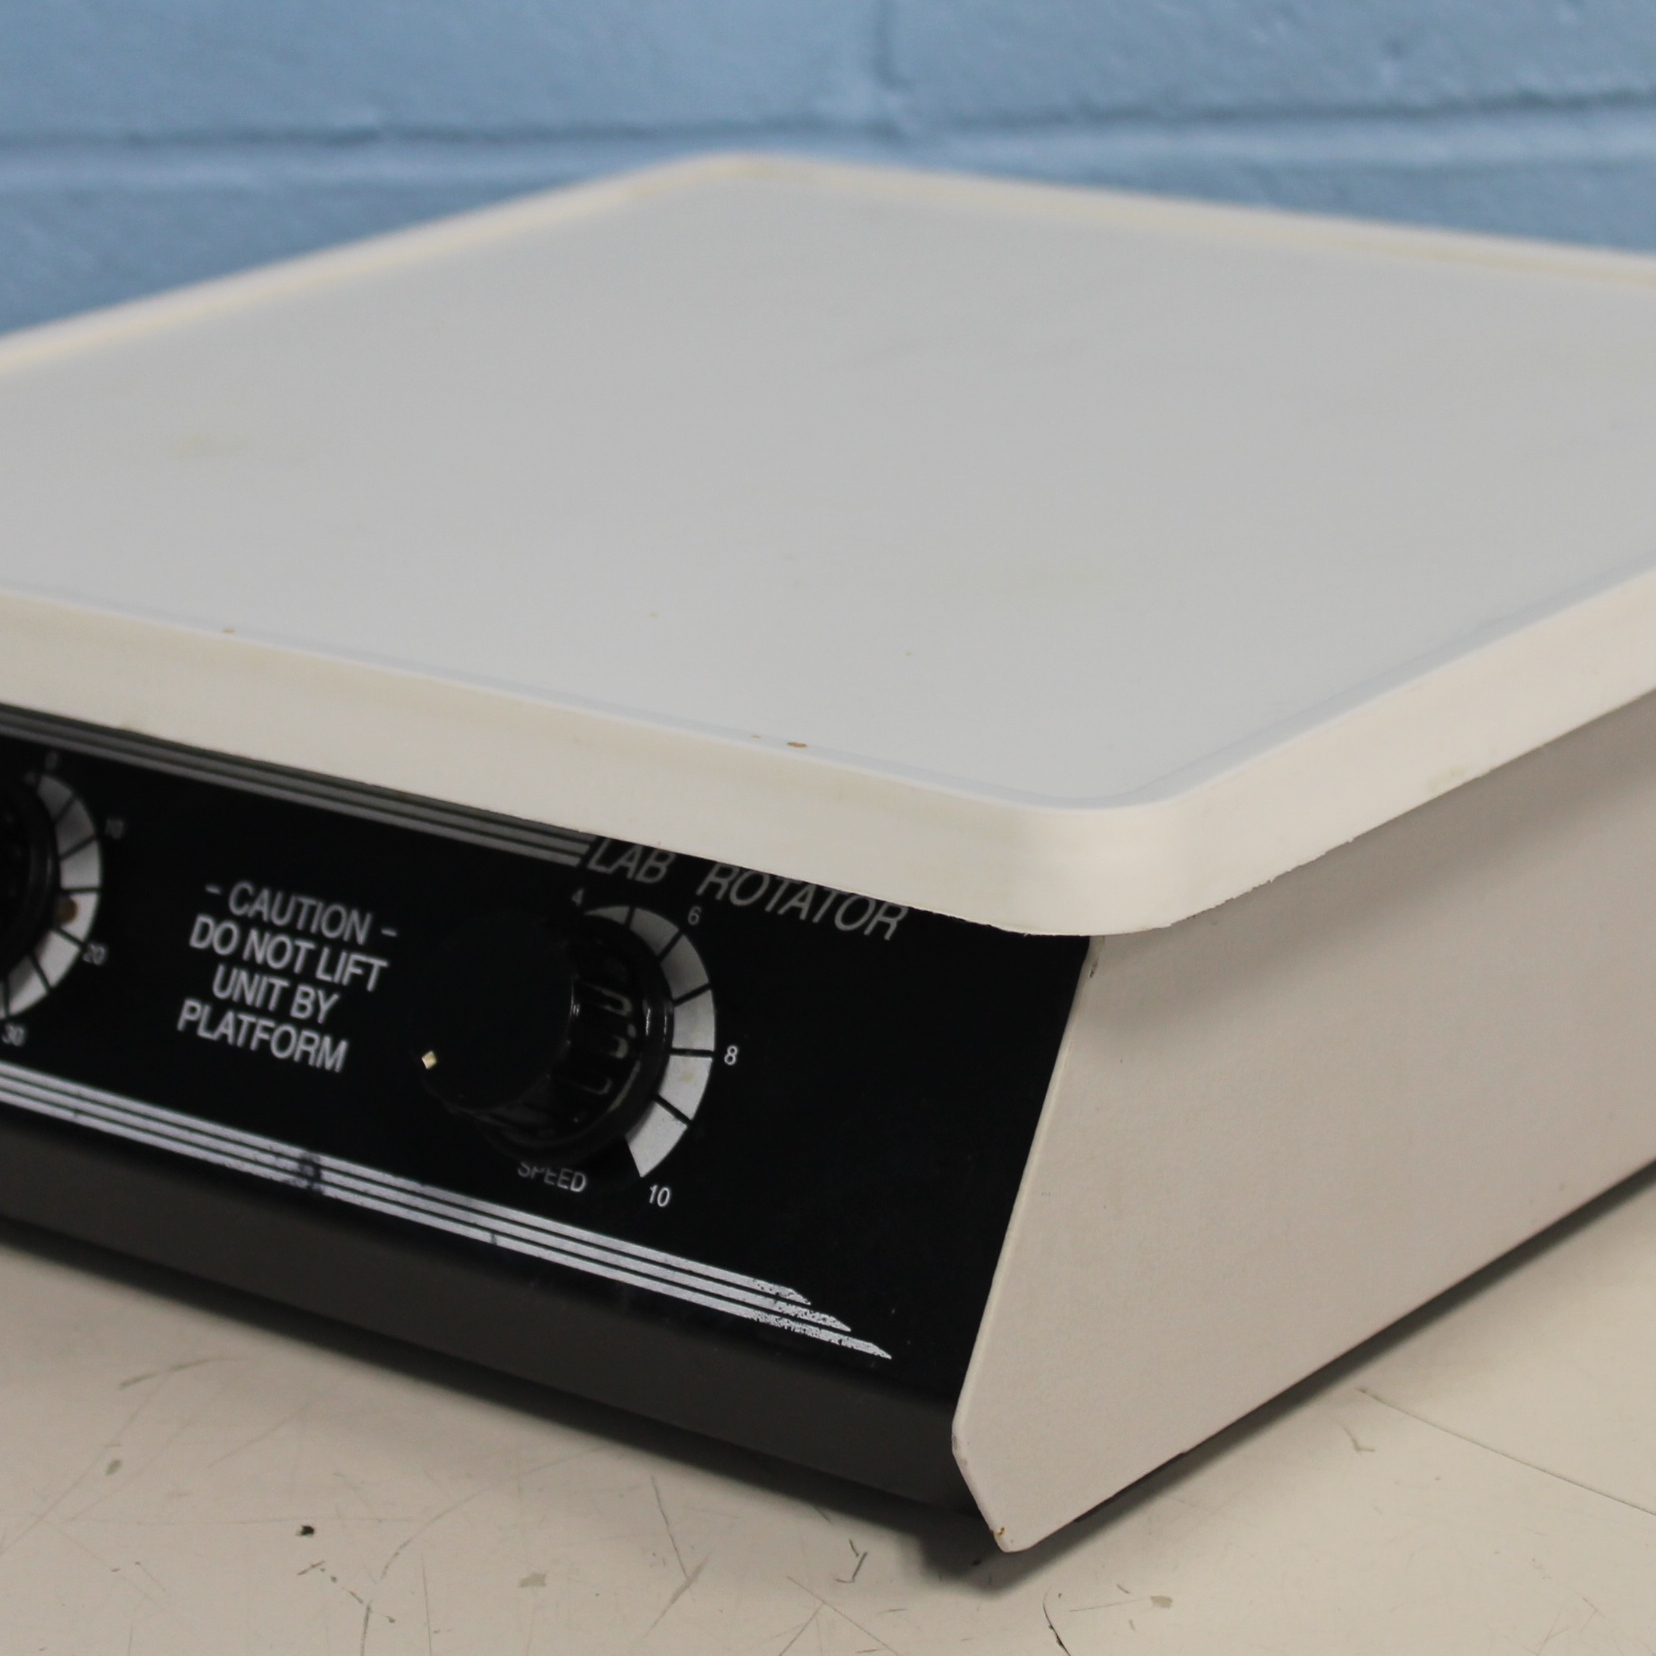 Lab-Line Lab Rotator Model 1314R Image